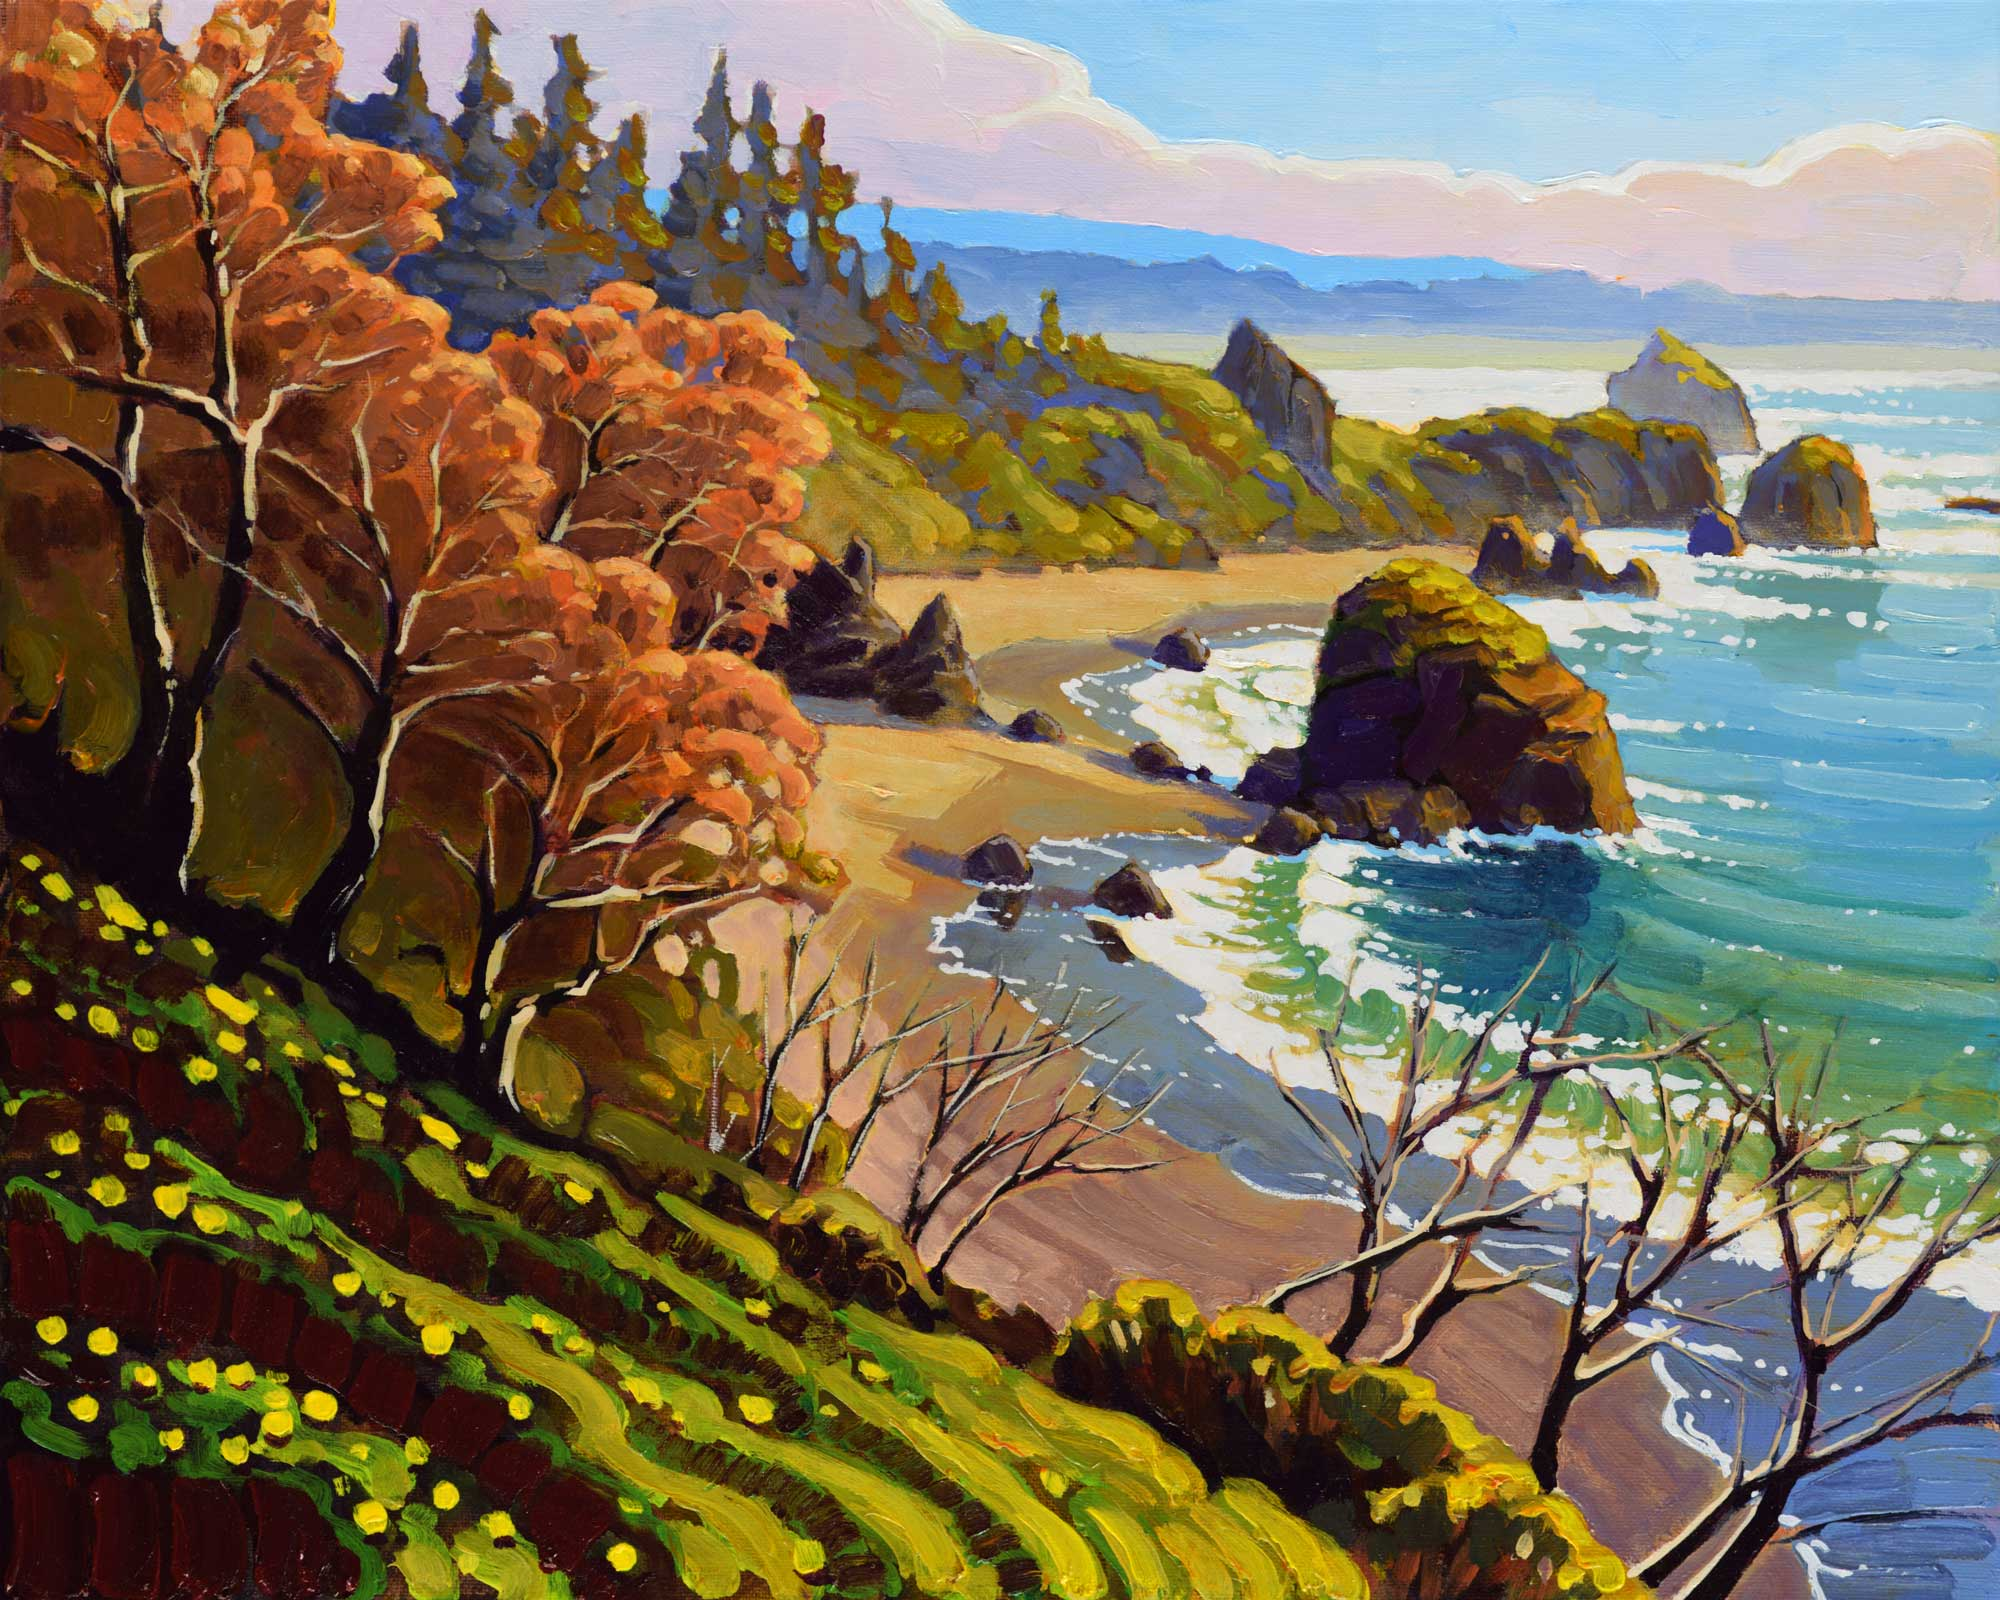 A plein air painting of Luffenholtz beach from Scenic Drive on Humboldt County's Trinidad coast in northern California